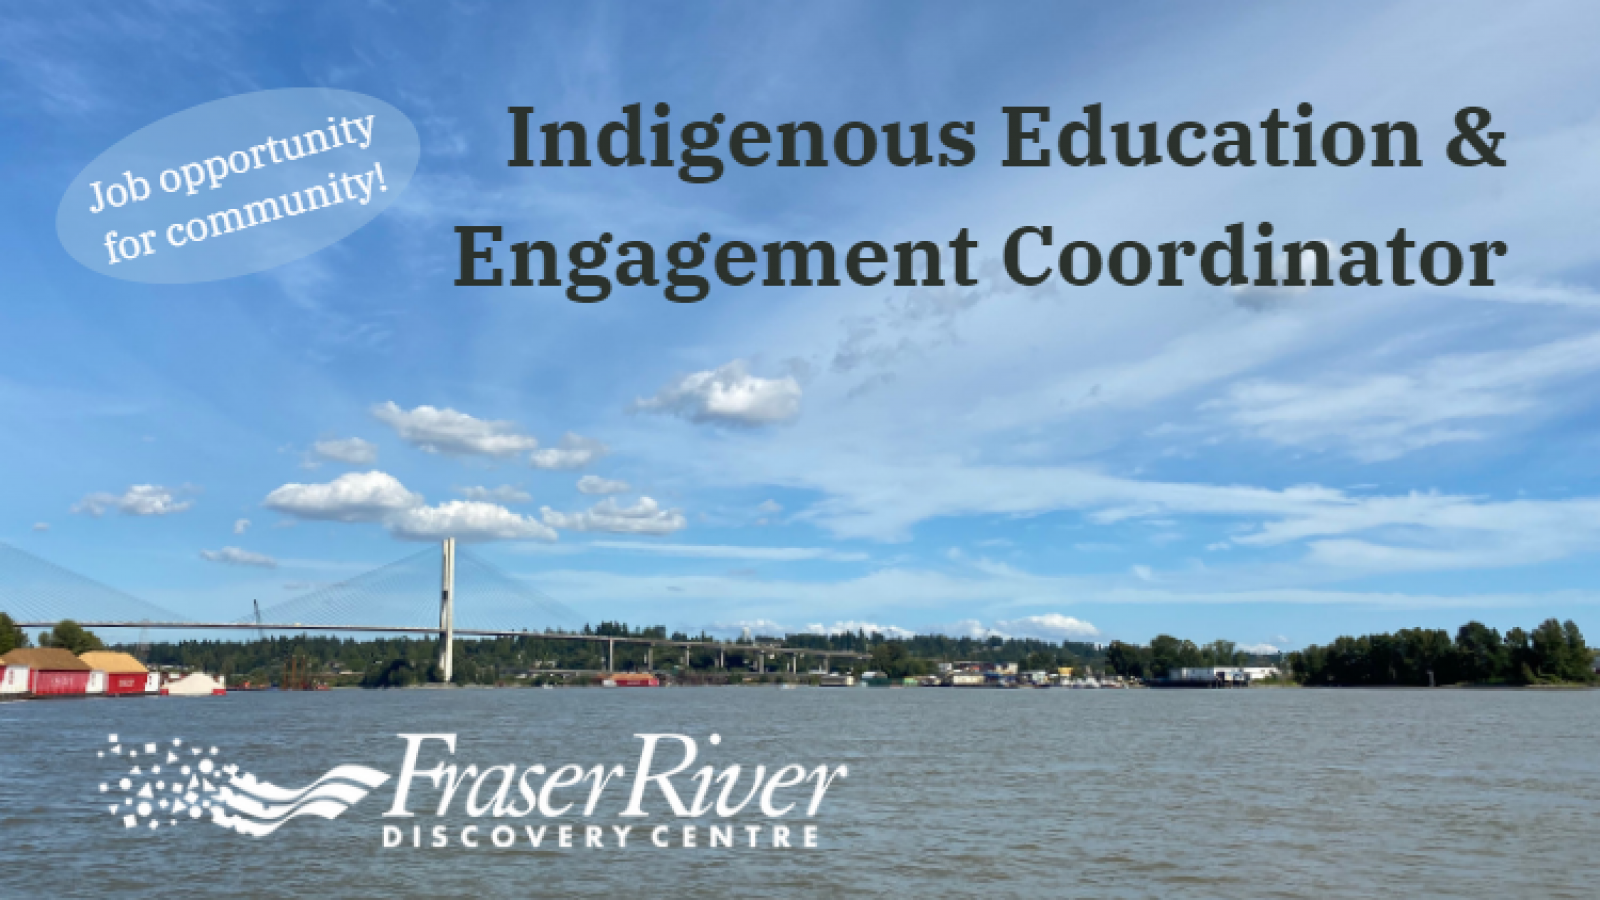 Fraser River Discovery Centre Job Posting for Musqueam community members